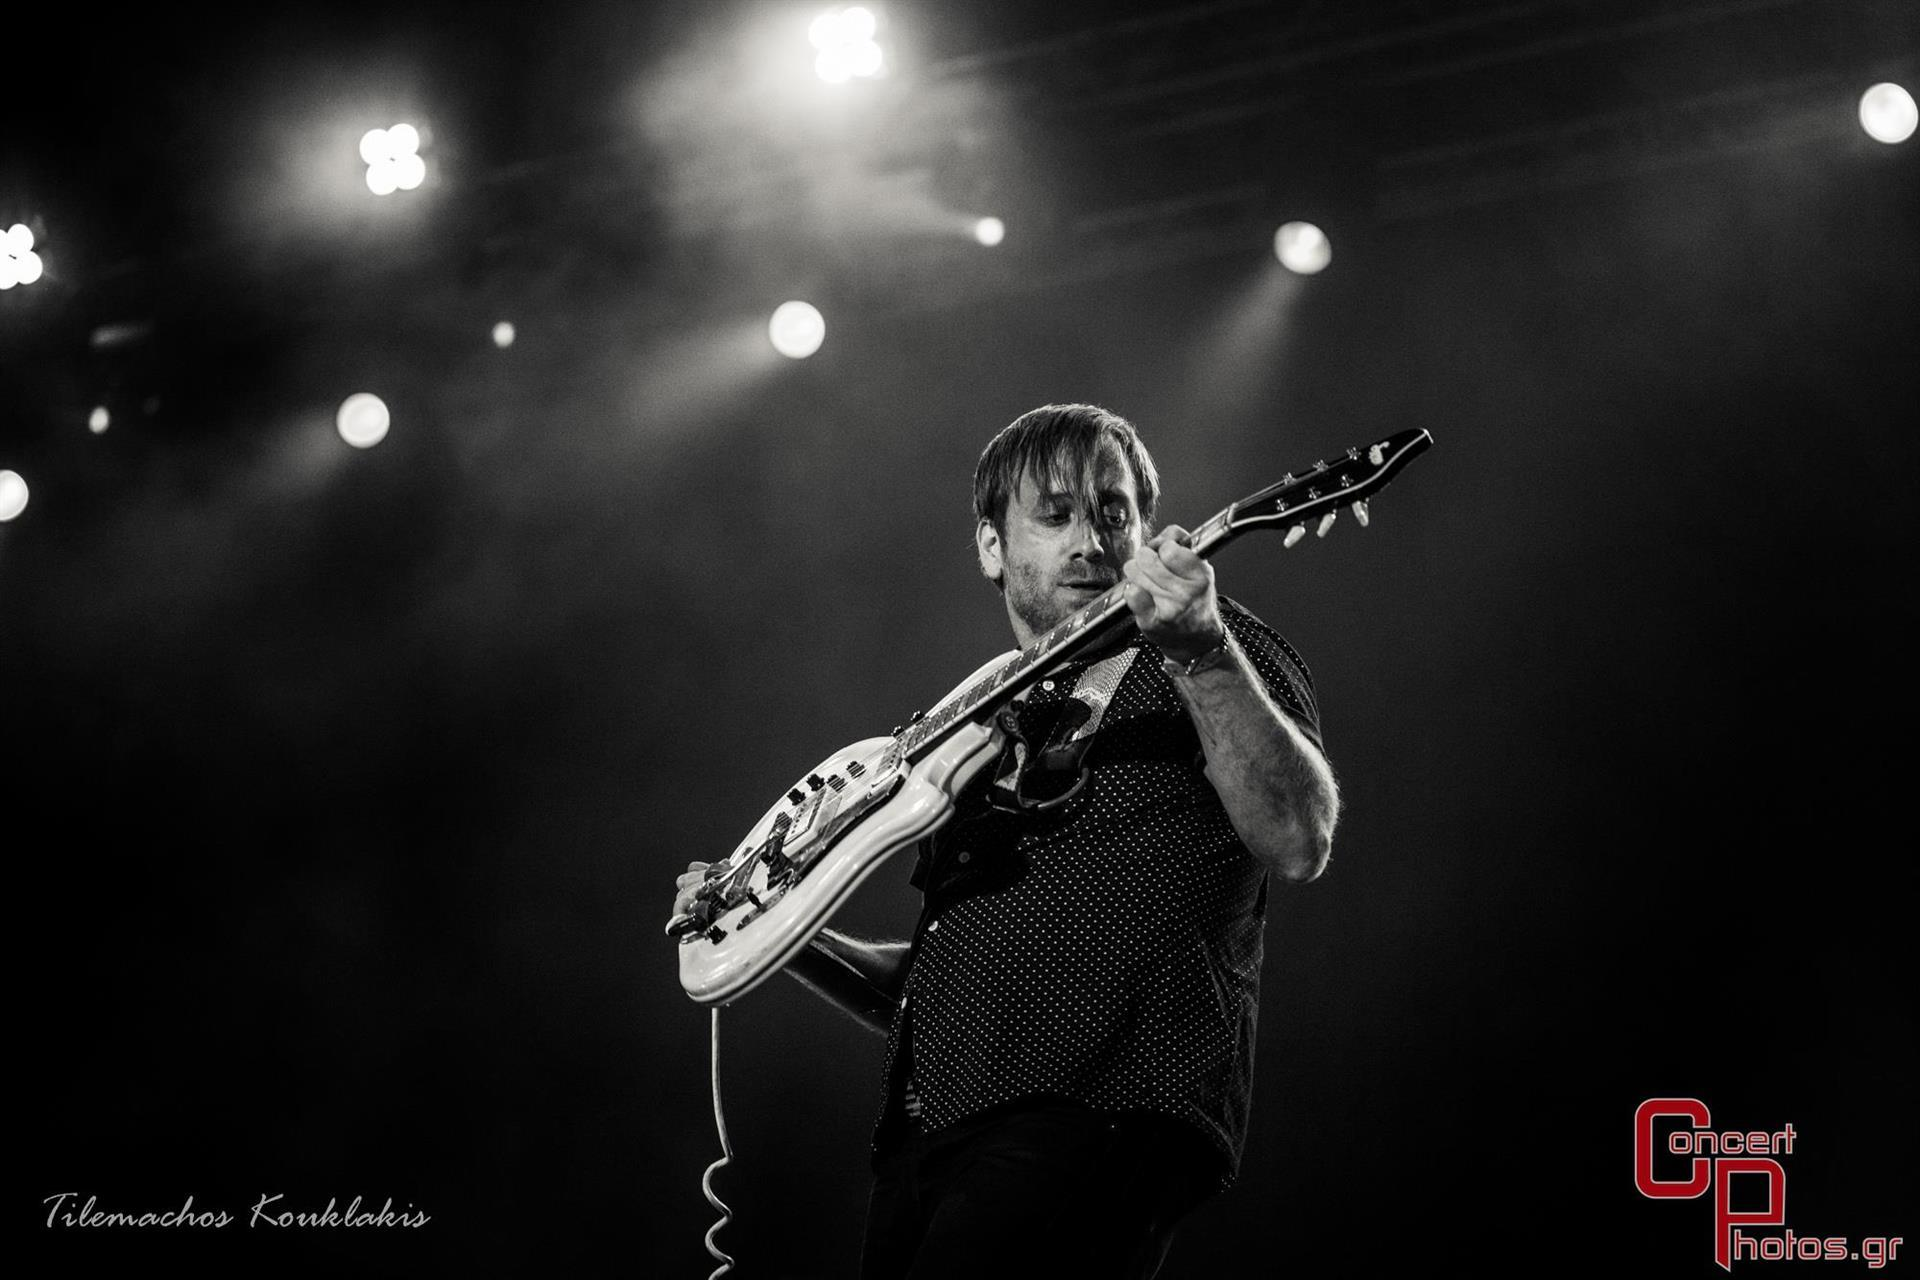 Rockwave 2015 - Black Keys-Black Angels-1000mods-The Big Nose Attack-Puta Volcano-Rockwave 2015 - Black Keys-Black Angels-1000mods photographer:  - 01_Black Keys _07